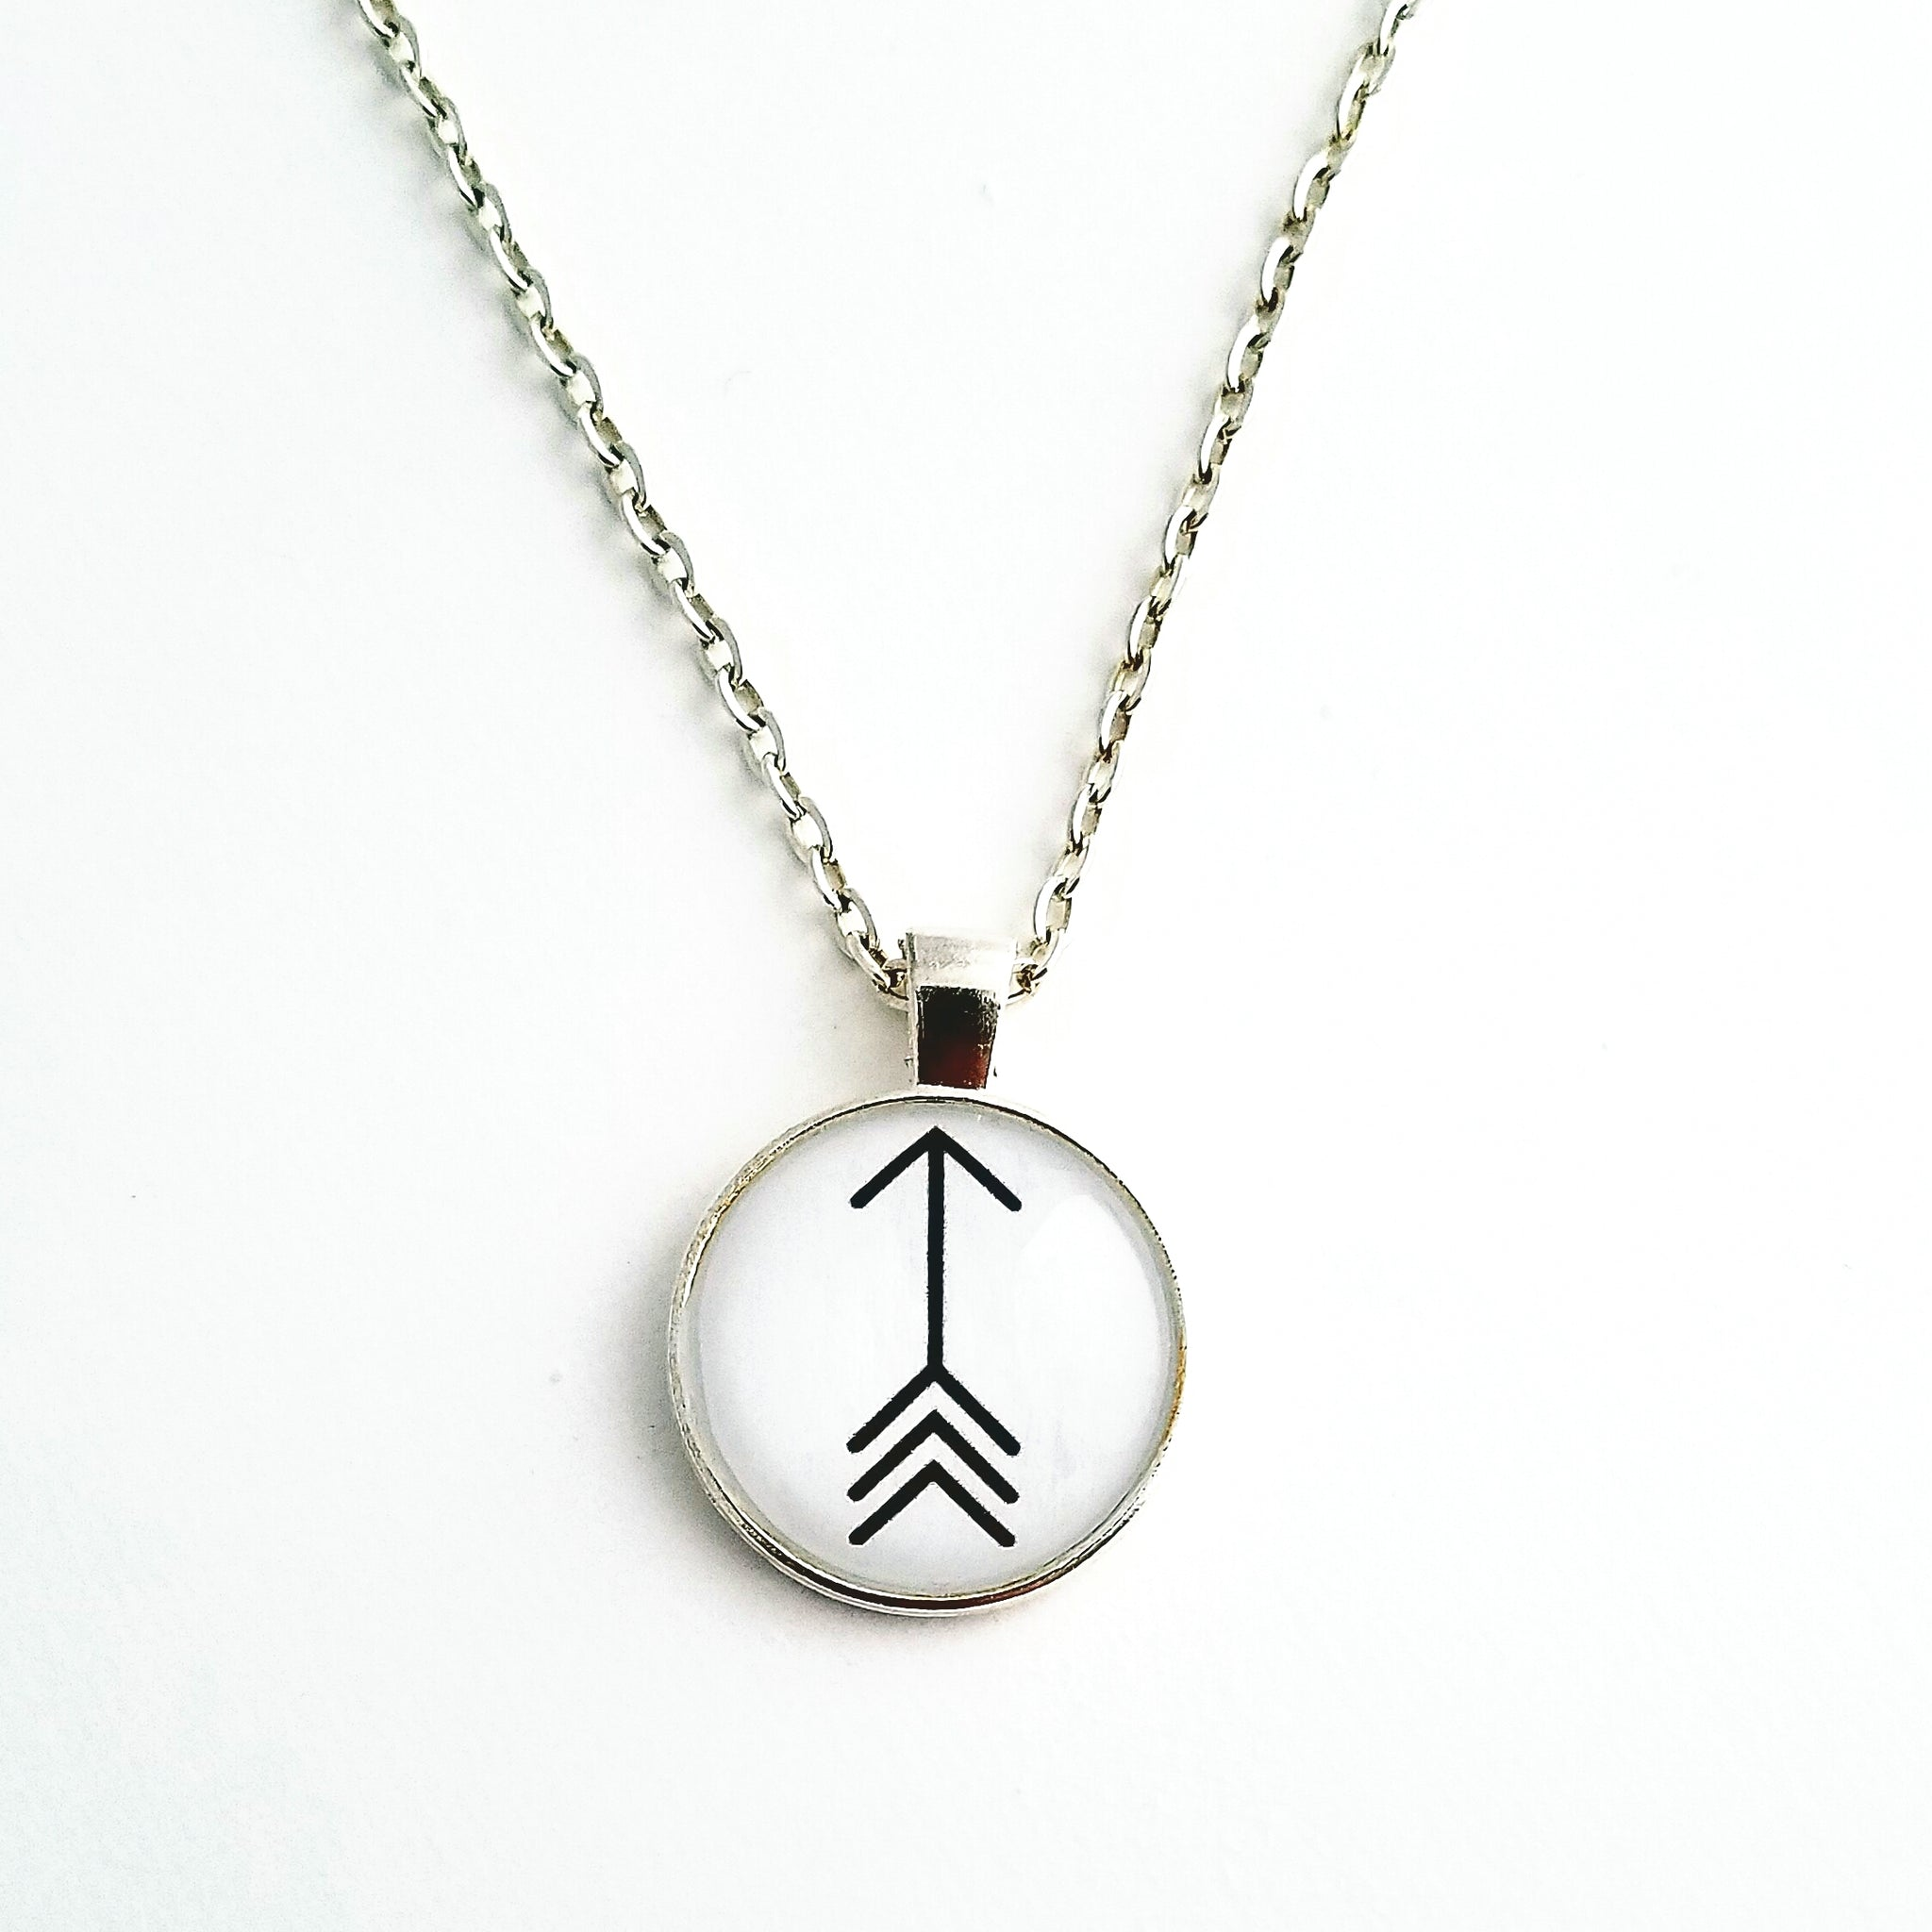 Black Arrow Pendant Necklace - L&G Gifts and Goodies